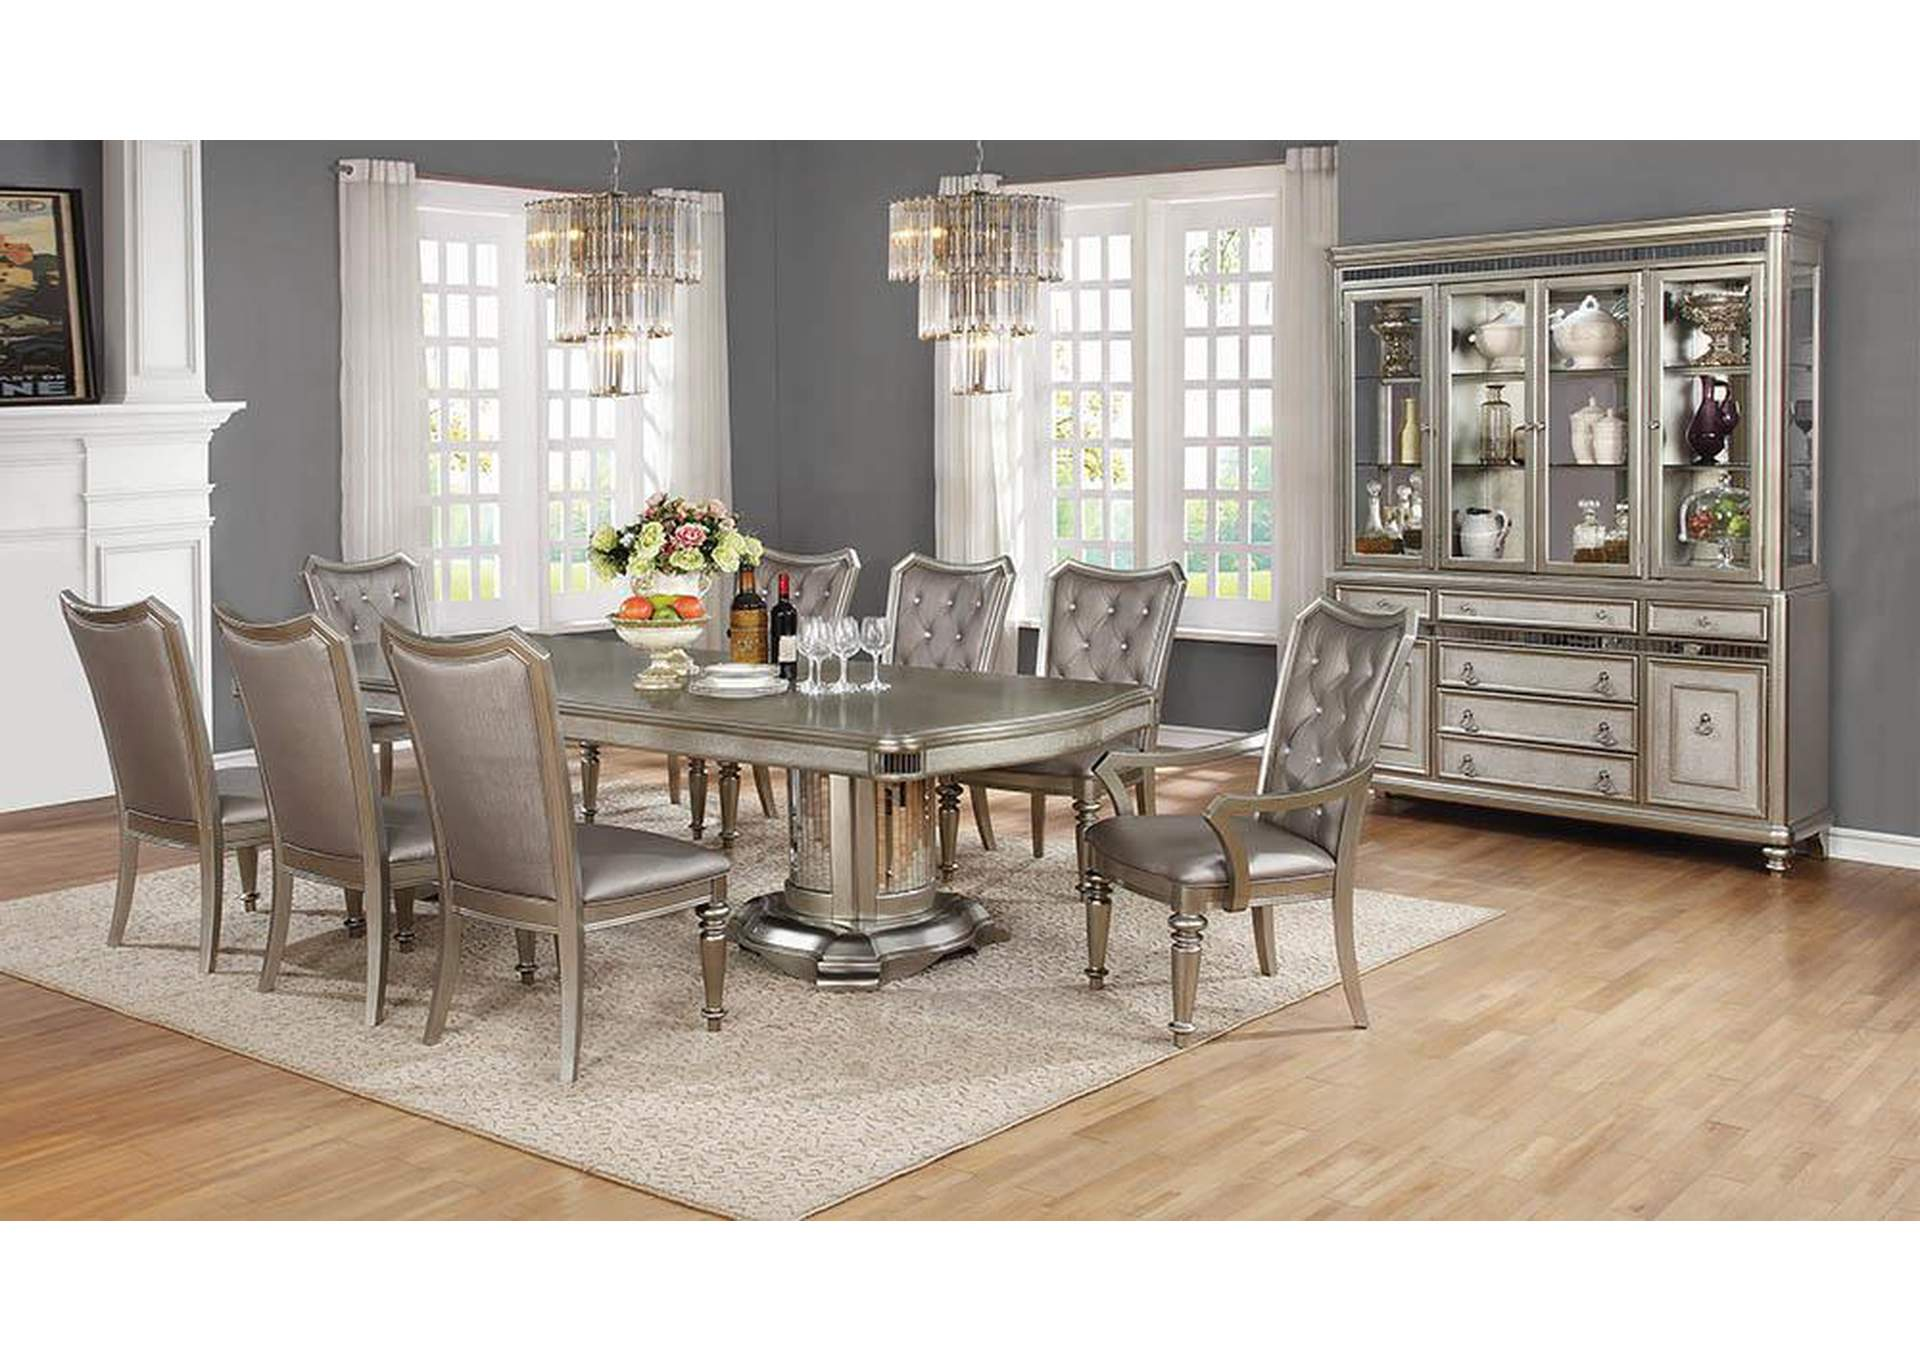 Danette Metallic Platinum Dining Table,Coaster Furniture